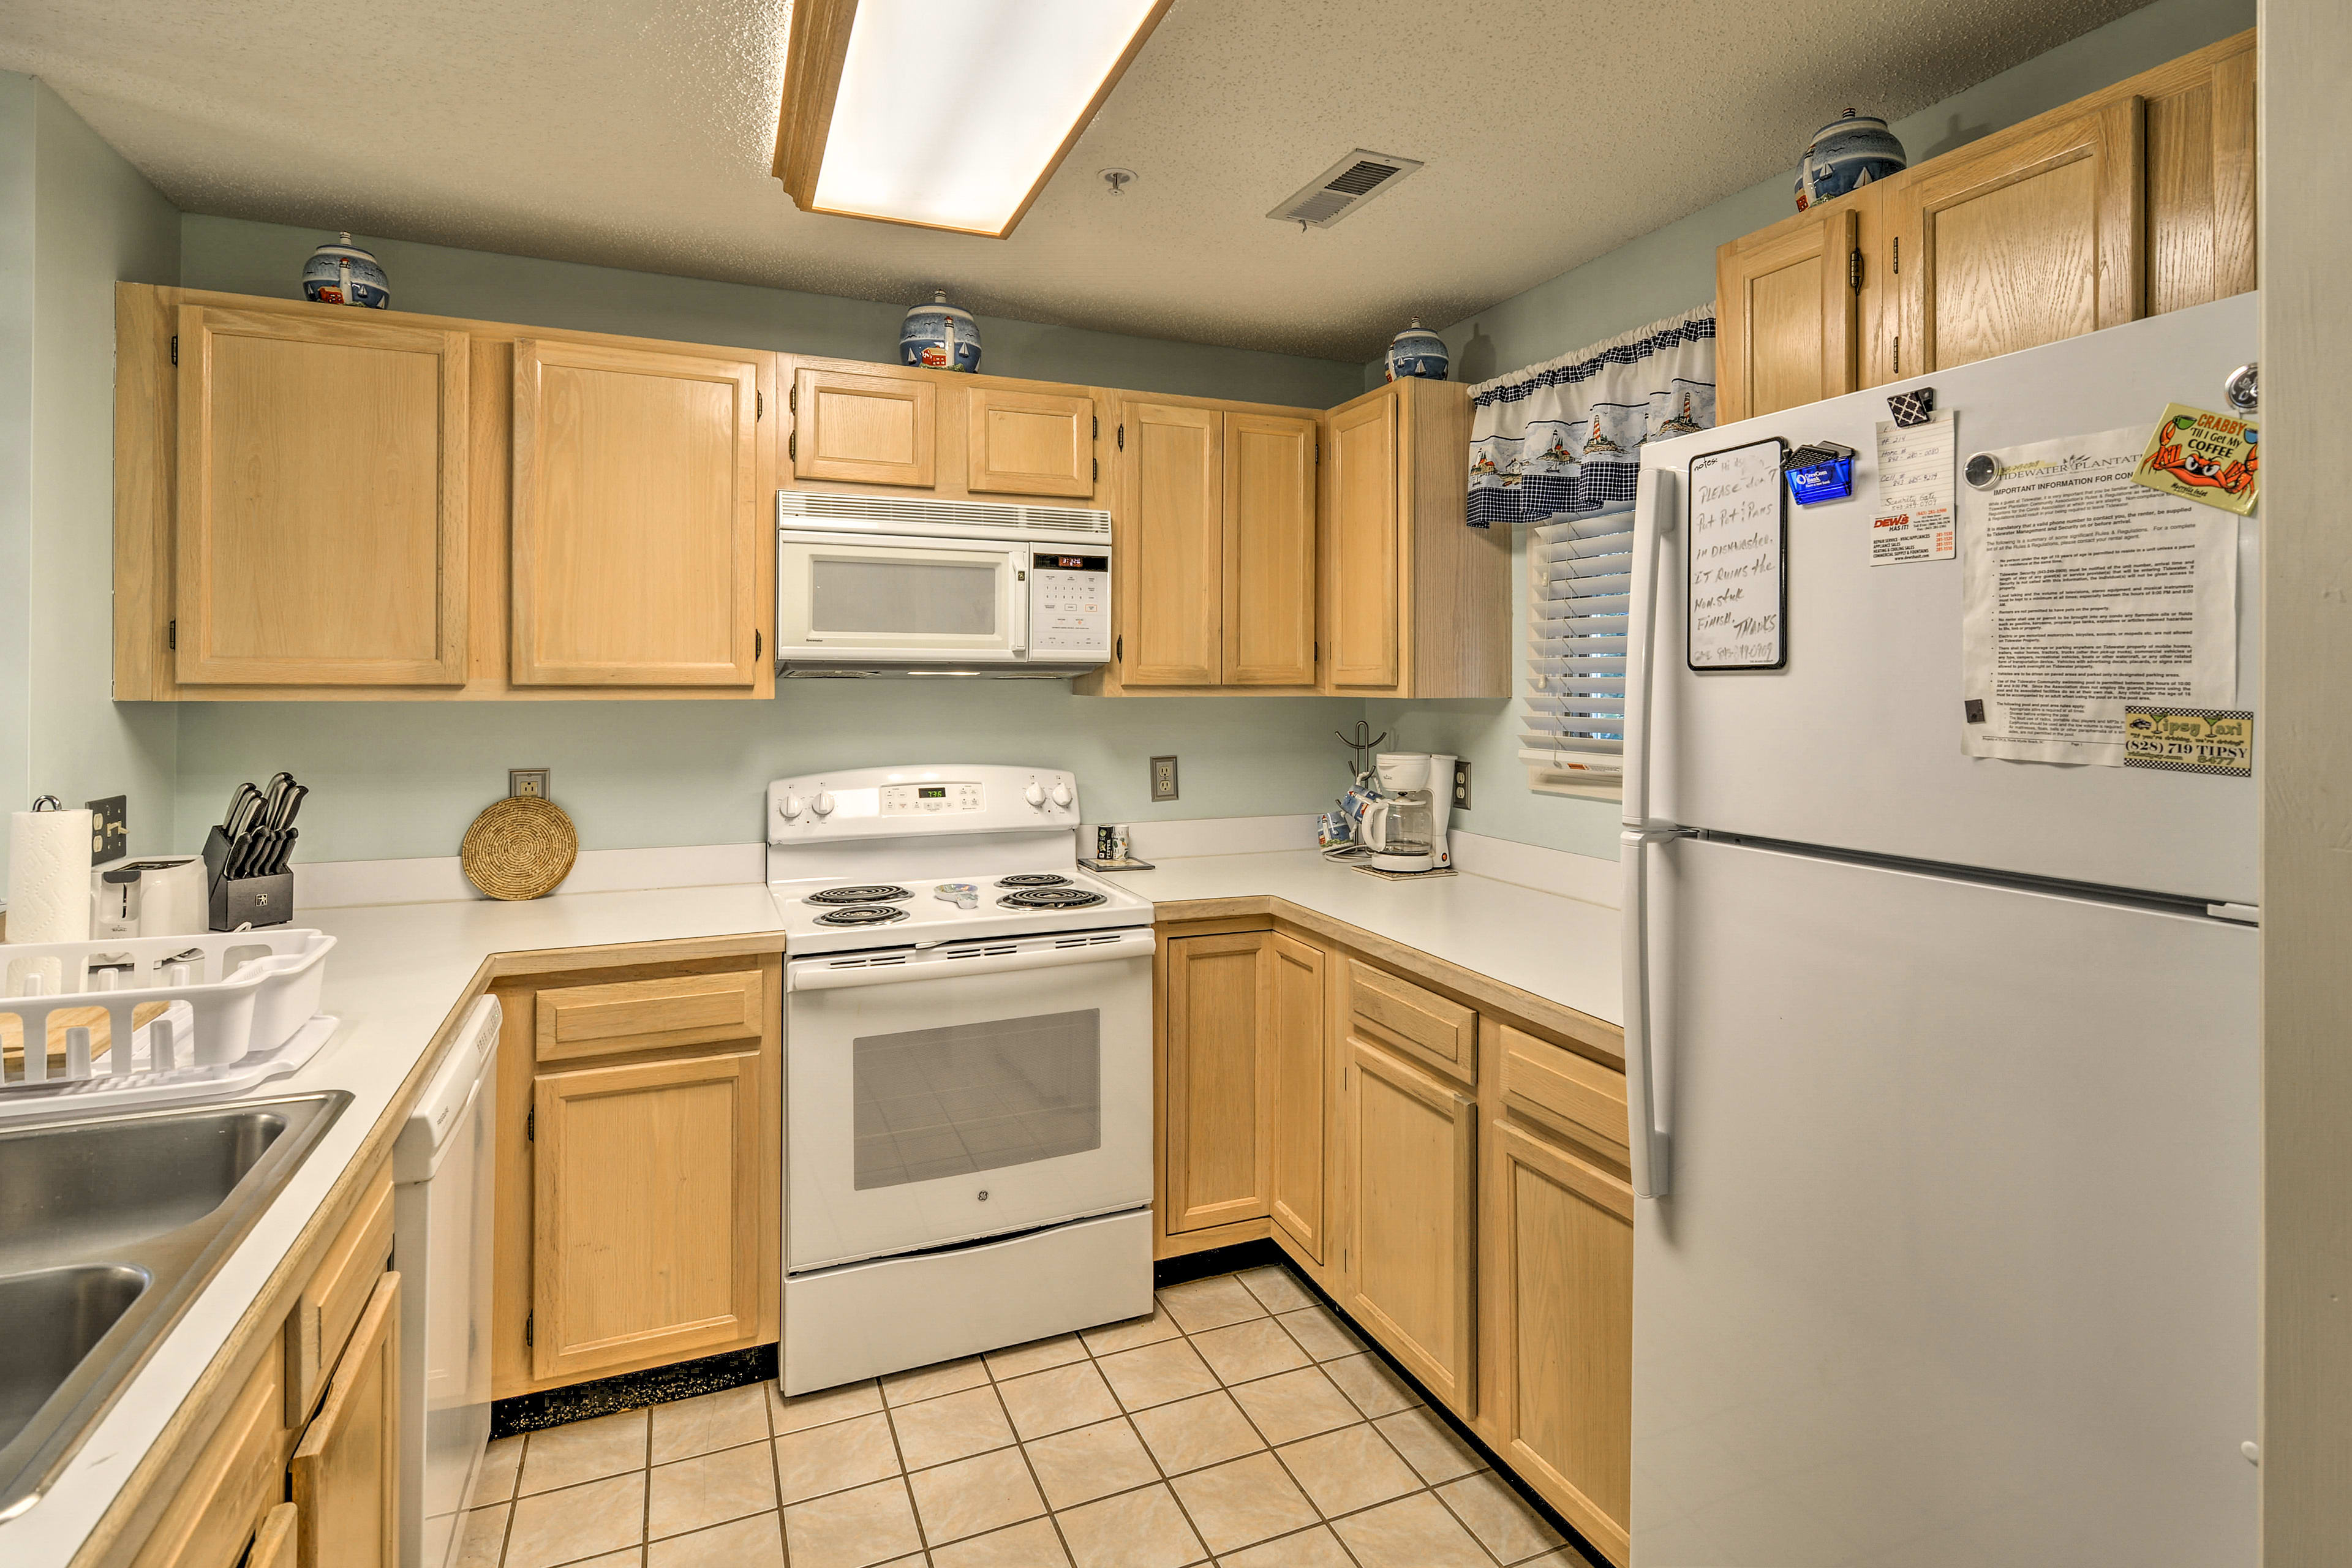 With modern appliances and ample counter space, meal prep will be a breeze.